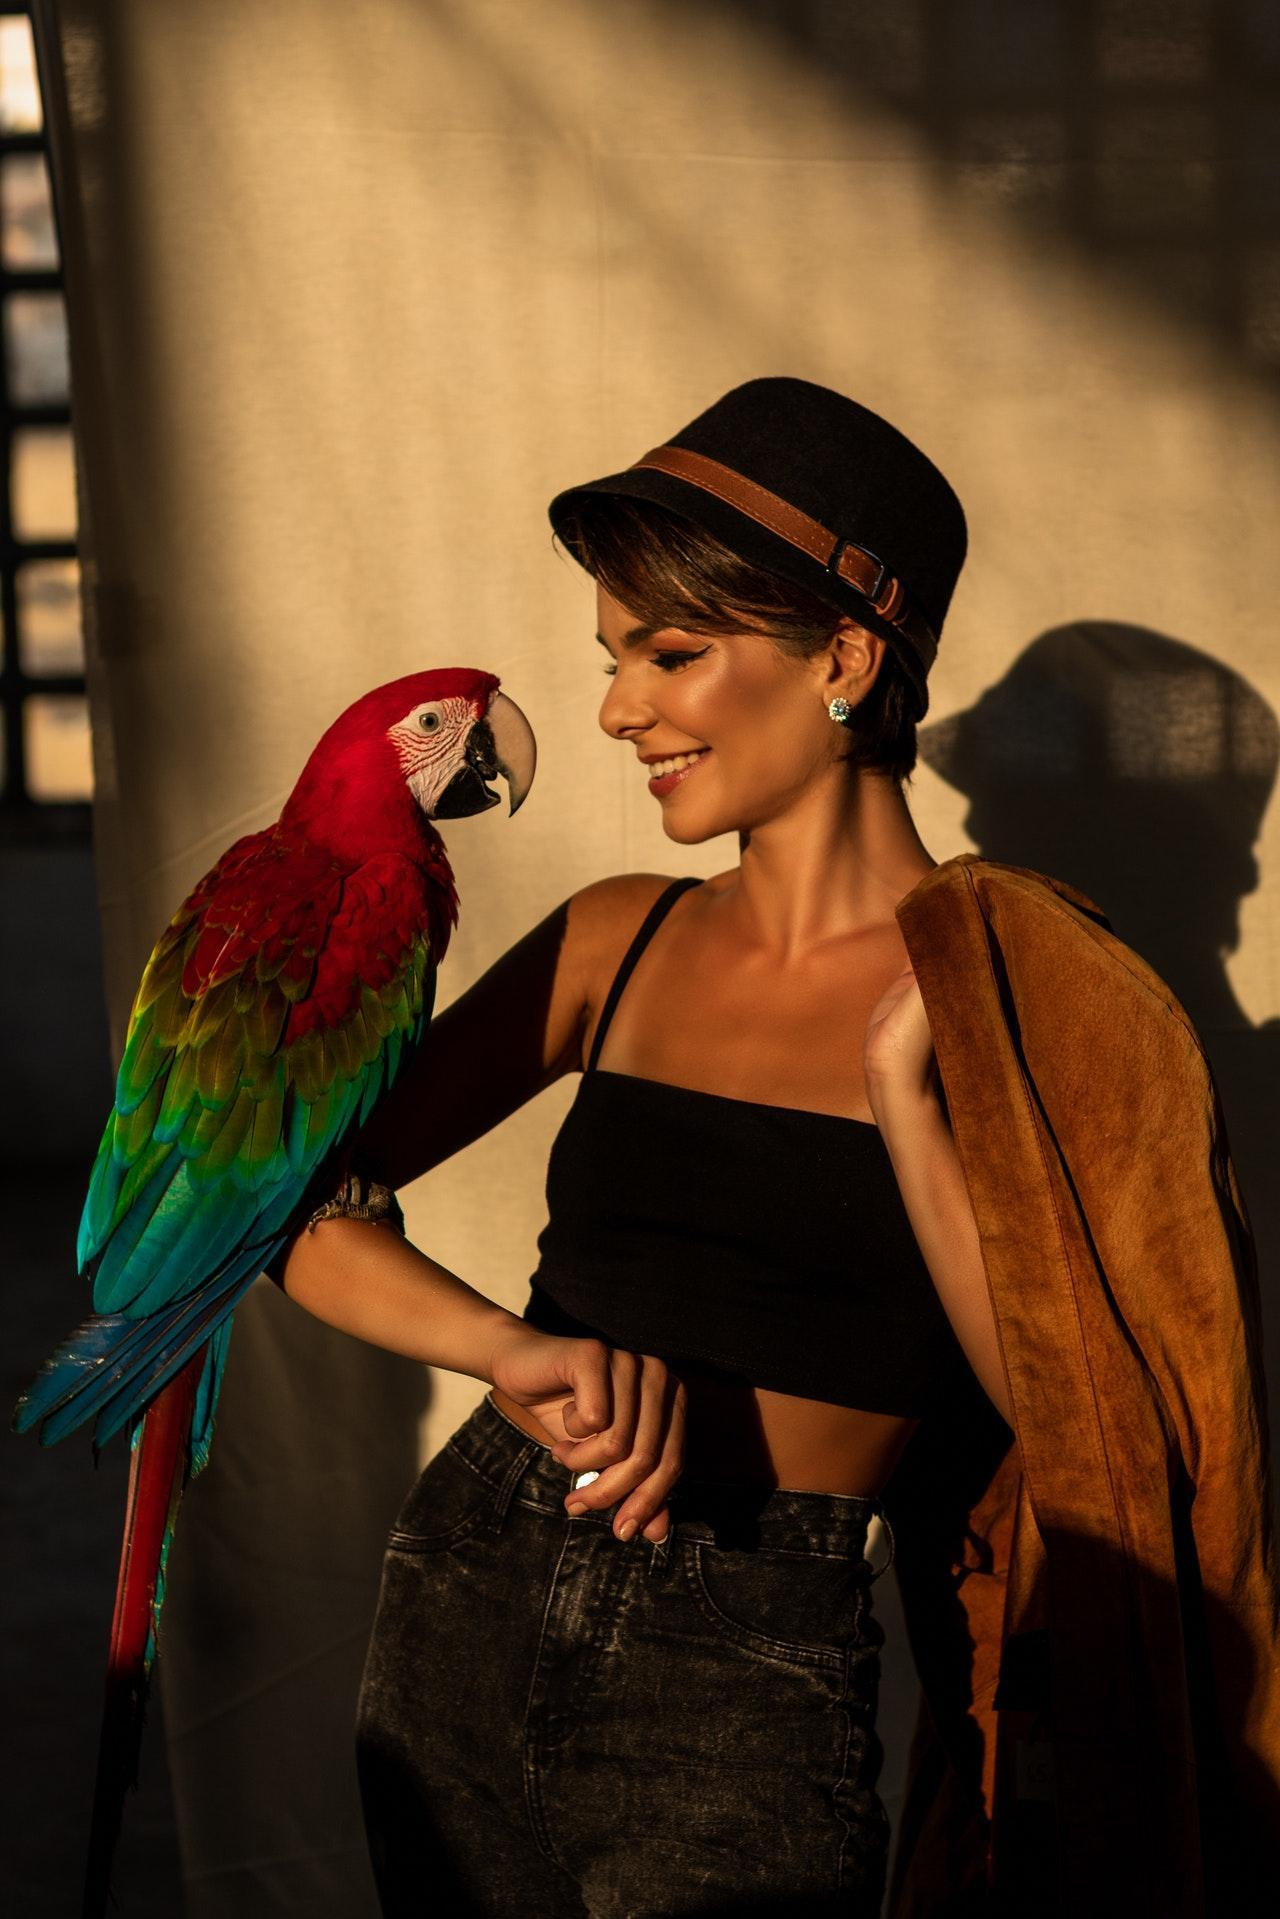 Woman with her parrot